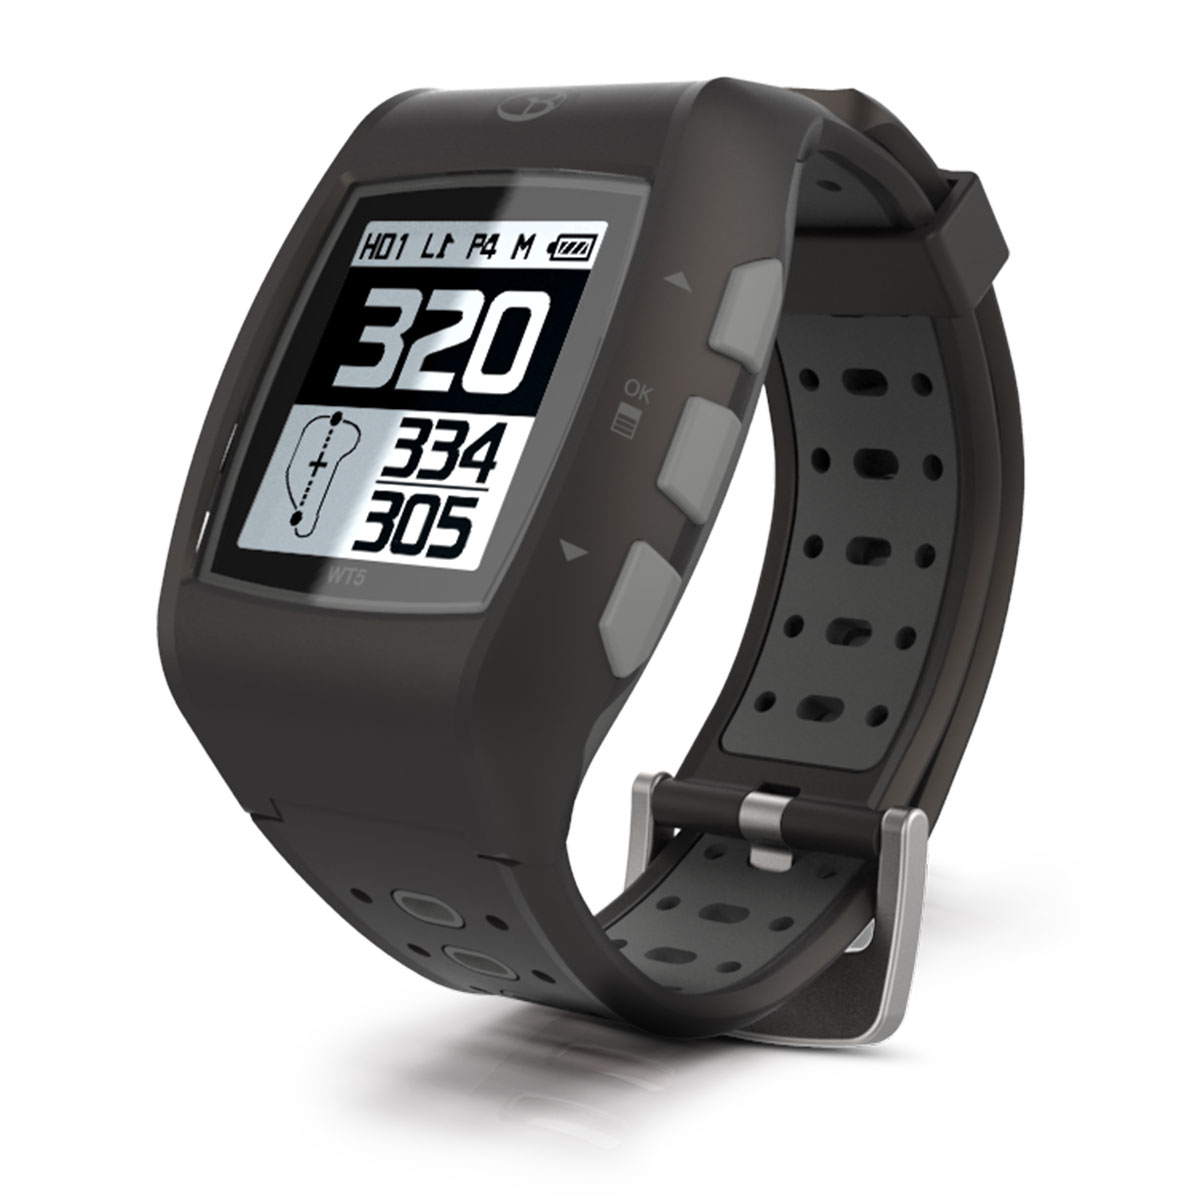 golfbuddy wt5 golf gps watch ebay. Black Bedroom Furniture Sets. Home Design Ideas